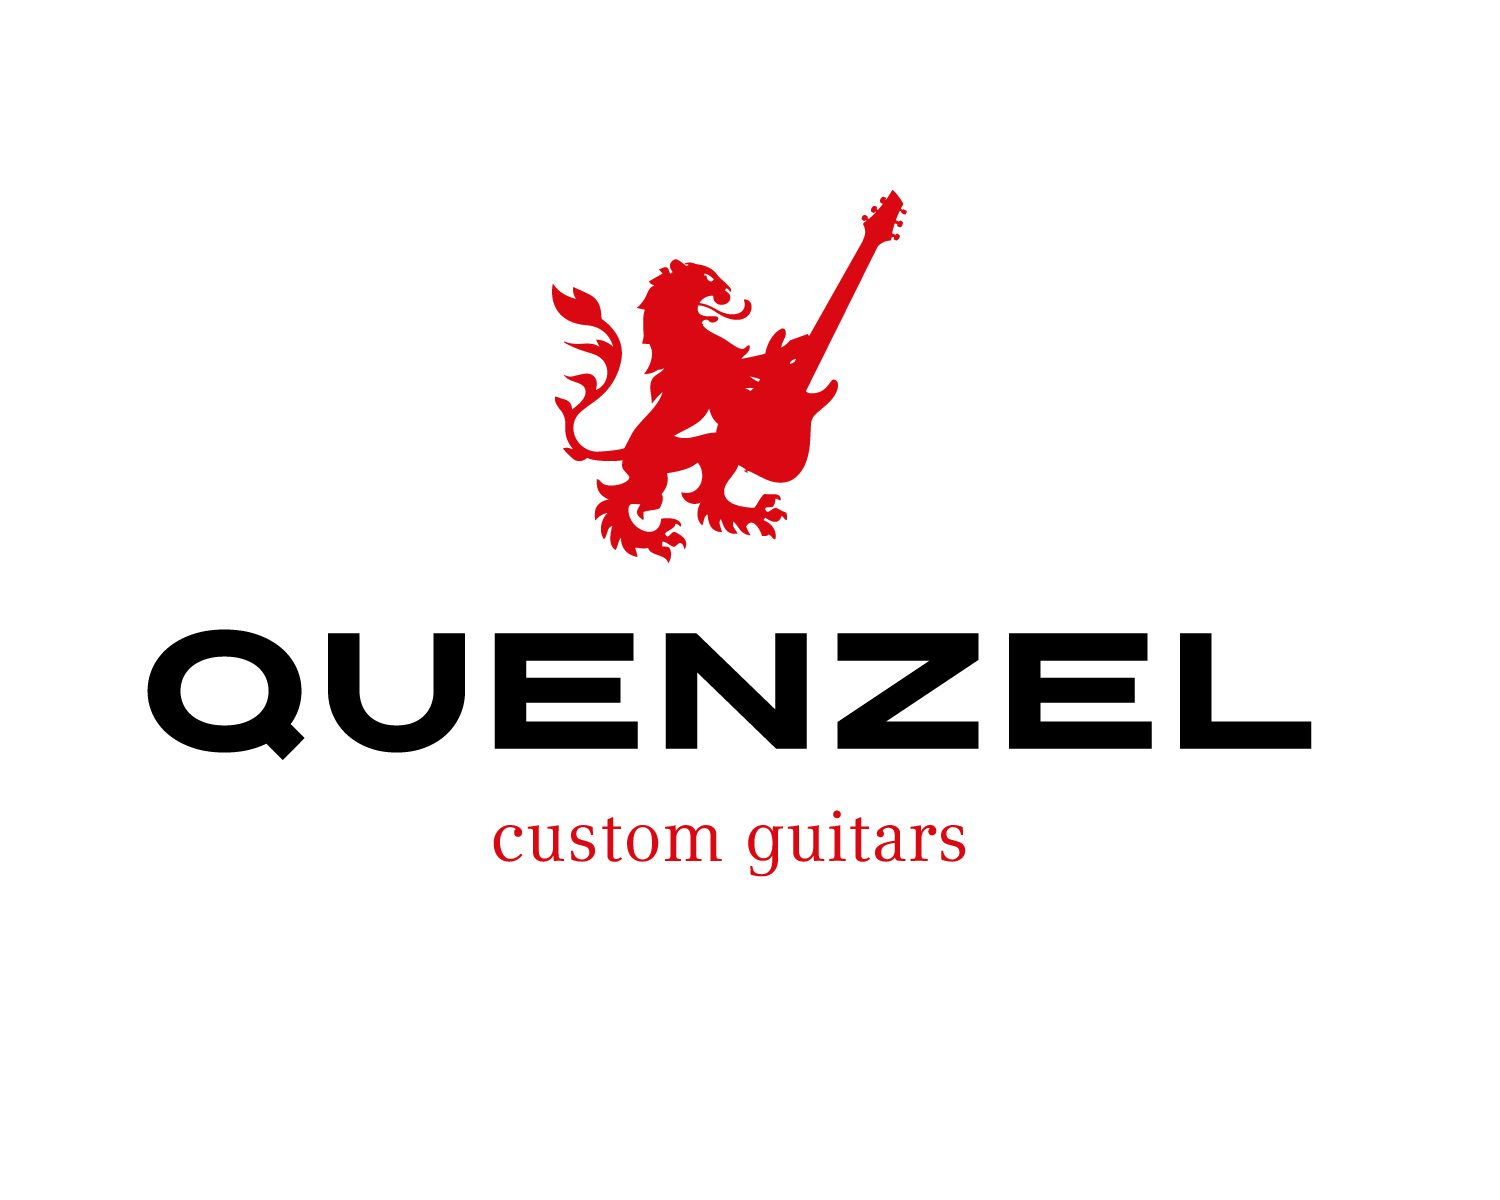 Quenzel Guitars